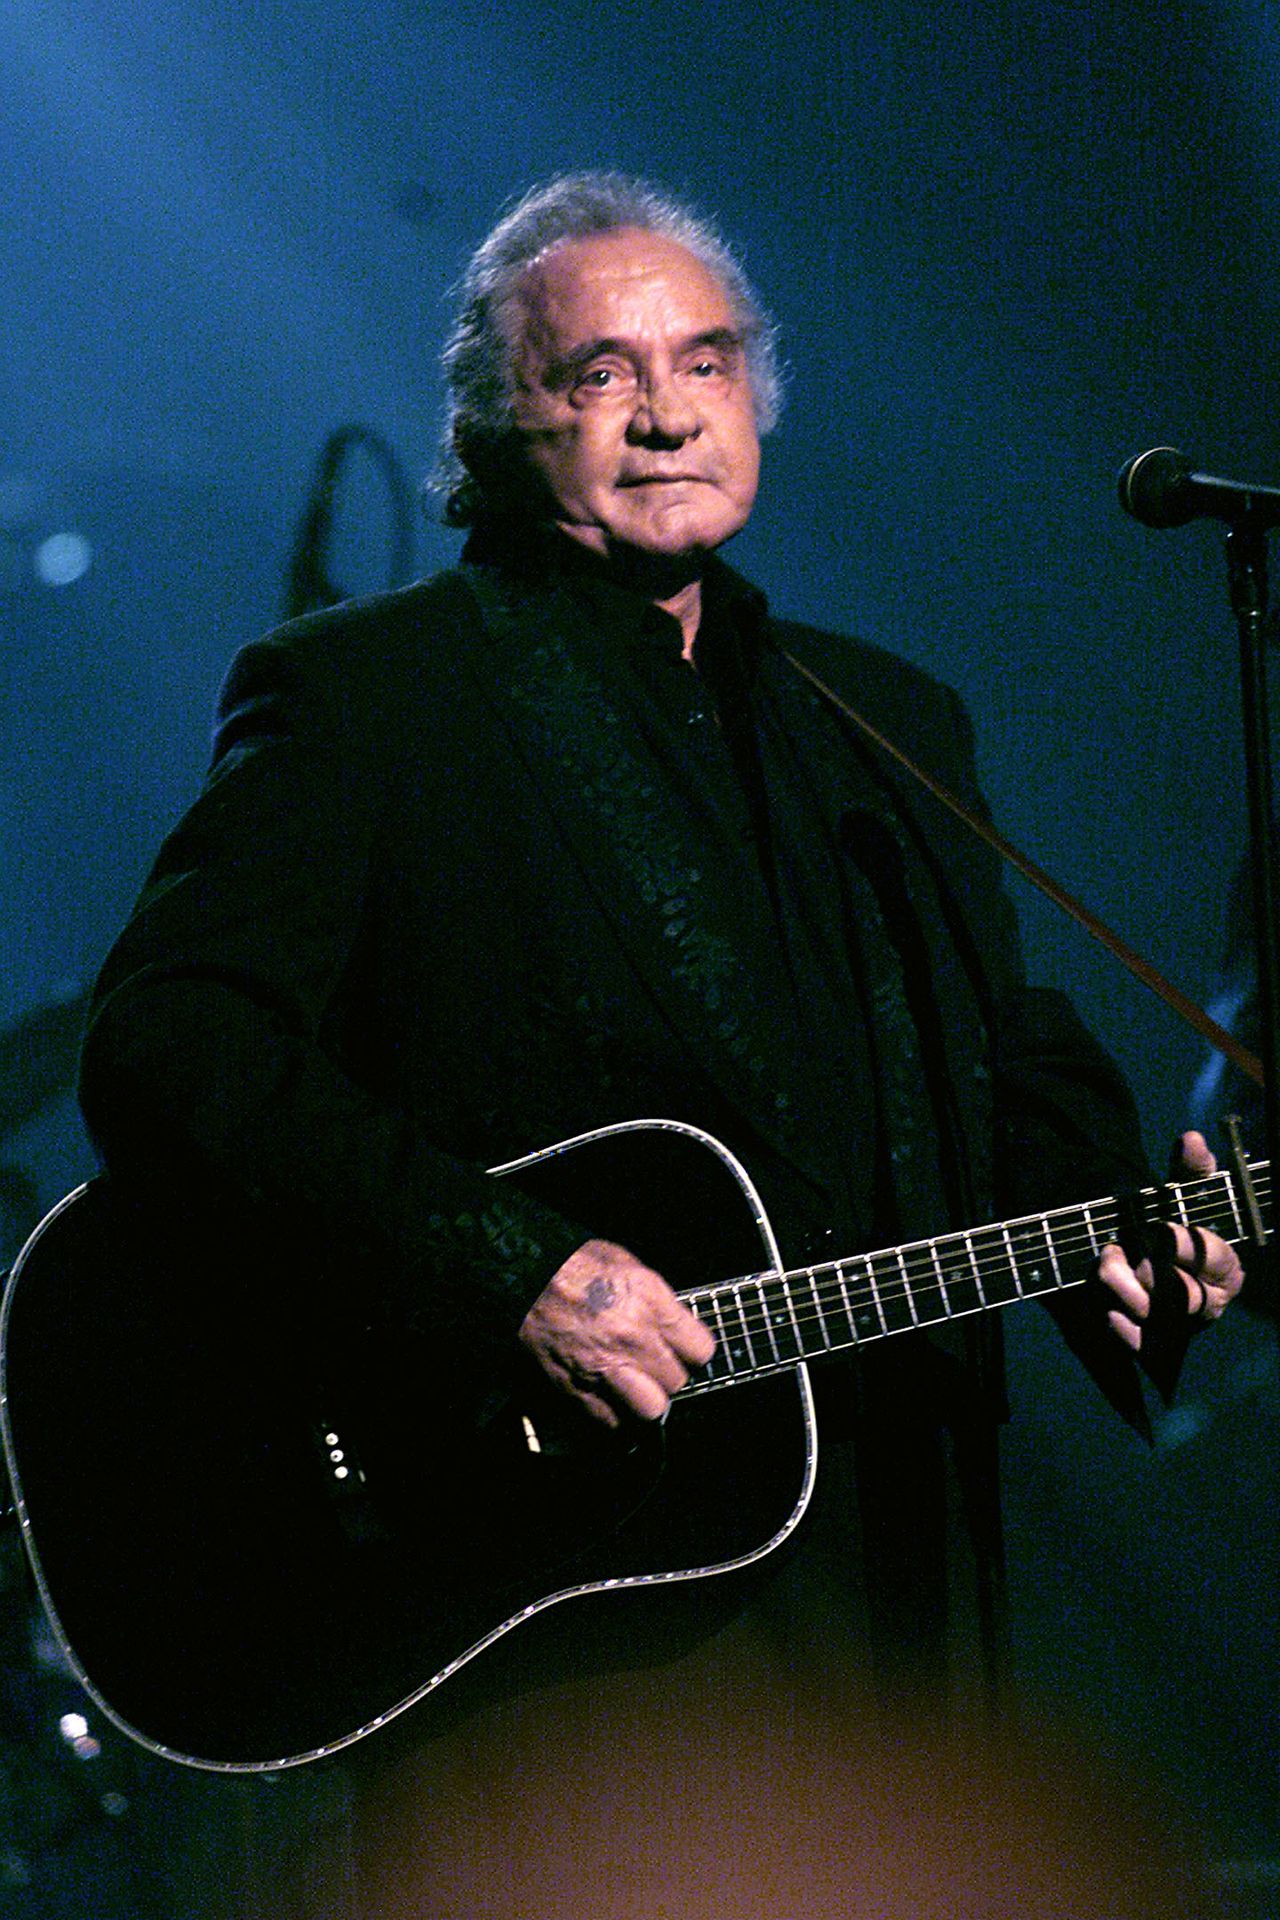 Johnny Cash in 1999 Foto AFP NEW TORK - APRIL 18, 1999: (FILE PHOTO) An all-star Tribute to Johnny Cash scheduled to air on TNT April 18, 1999/ Hammerstein Ballroom, NYC NY. Johnny Cash died September 12, 2003 in a hospital in Nashville, Tennessee while being treated for a stomach complaint. He was 71. (Photo Scott Gries/ImageDirect)